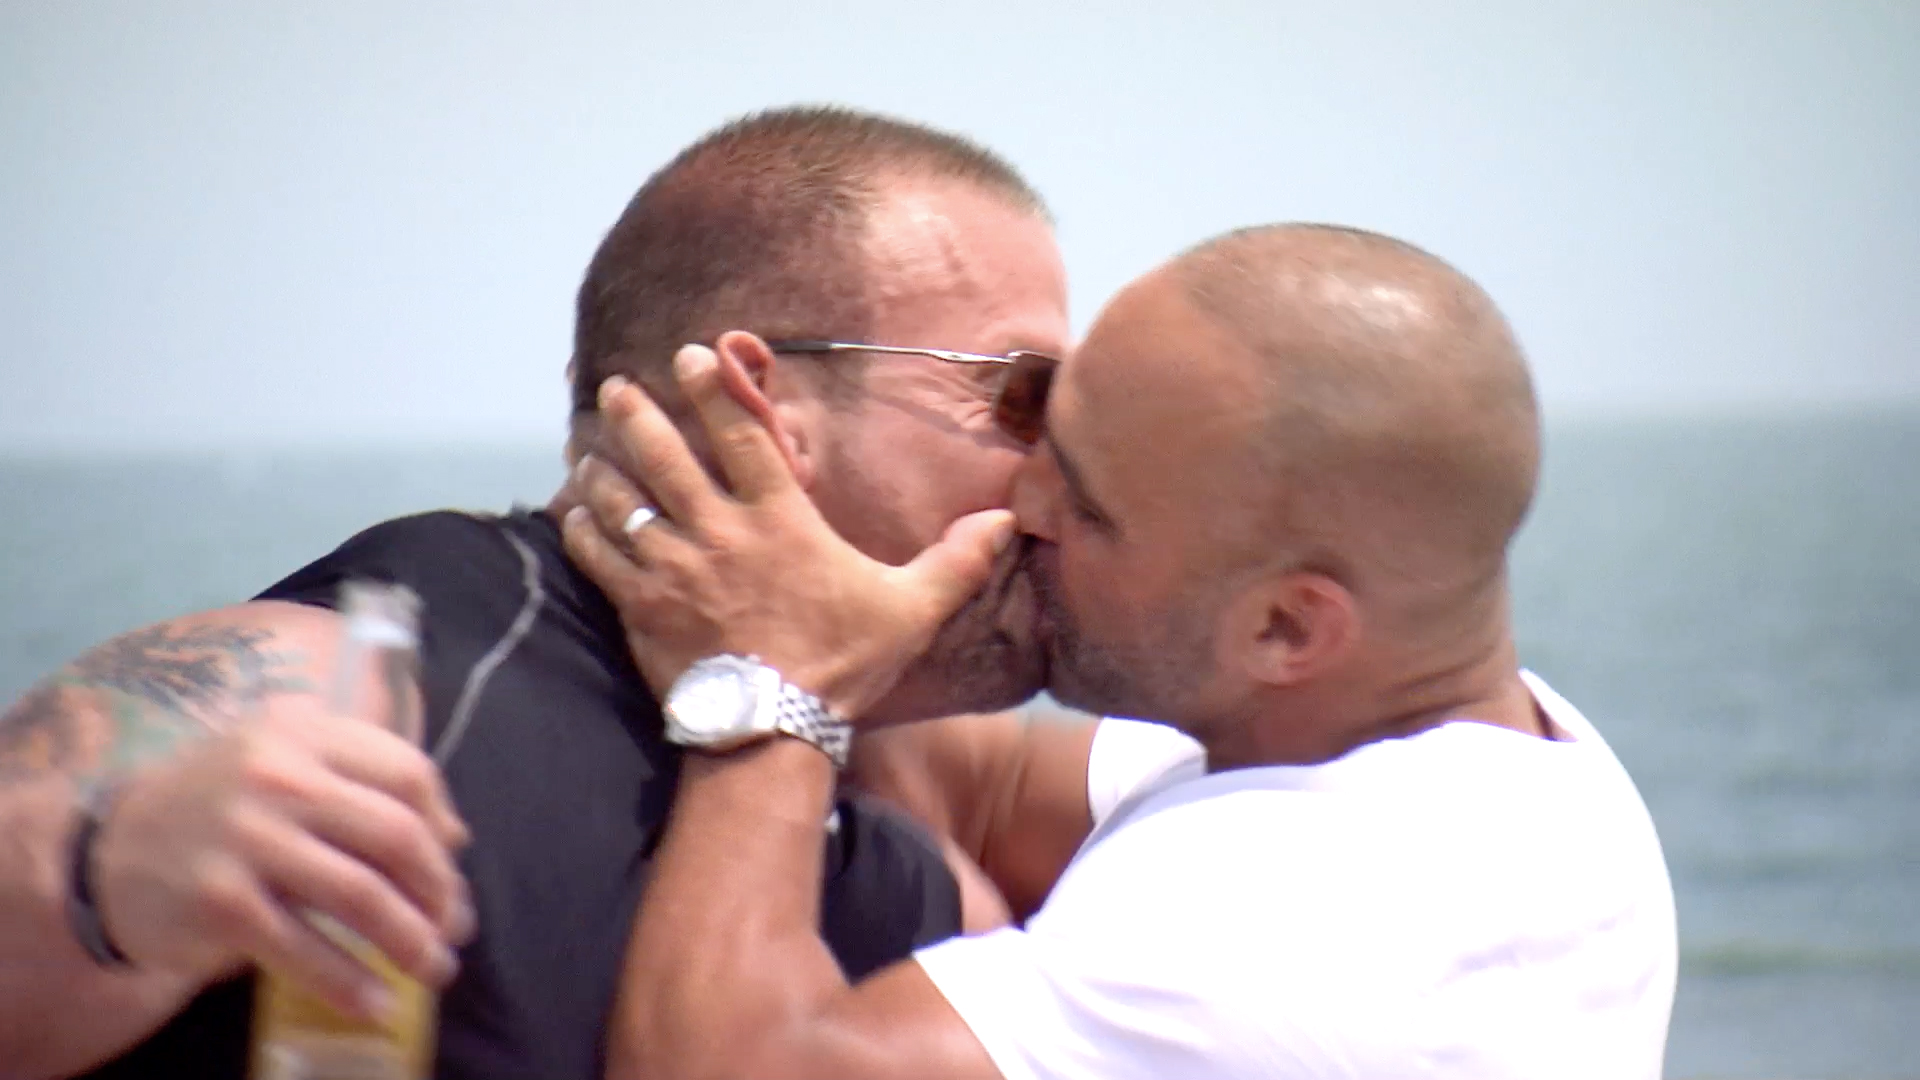 Joe Gorga Plants a Big Kiss on Frank Catania